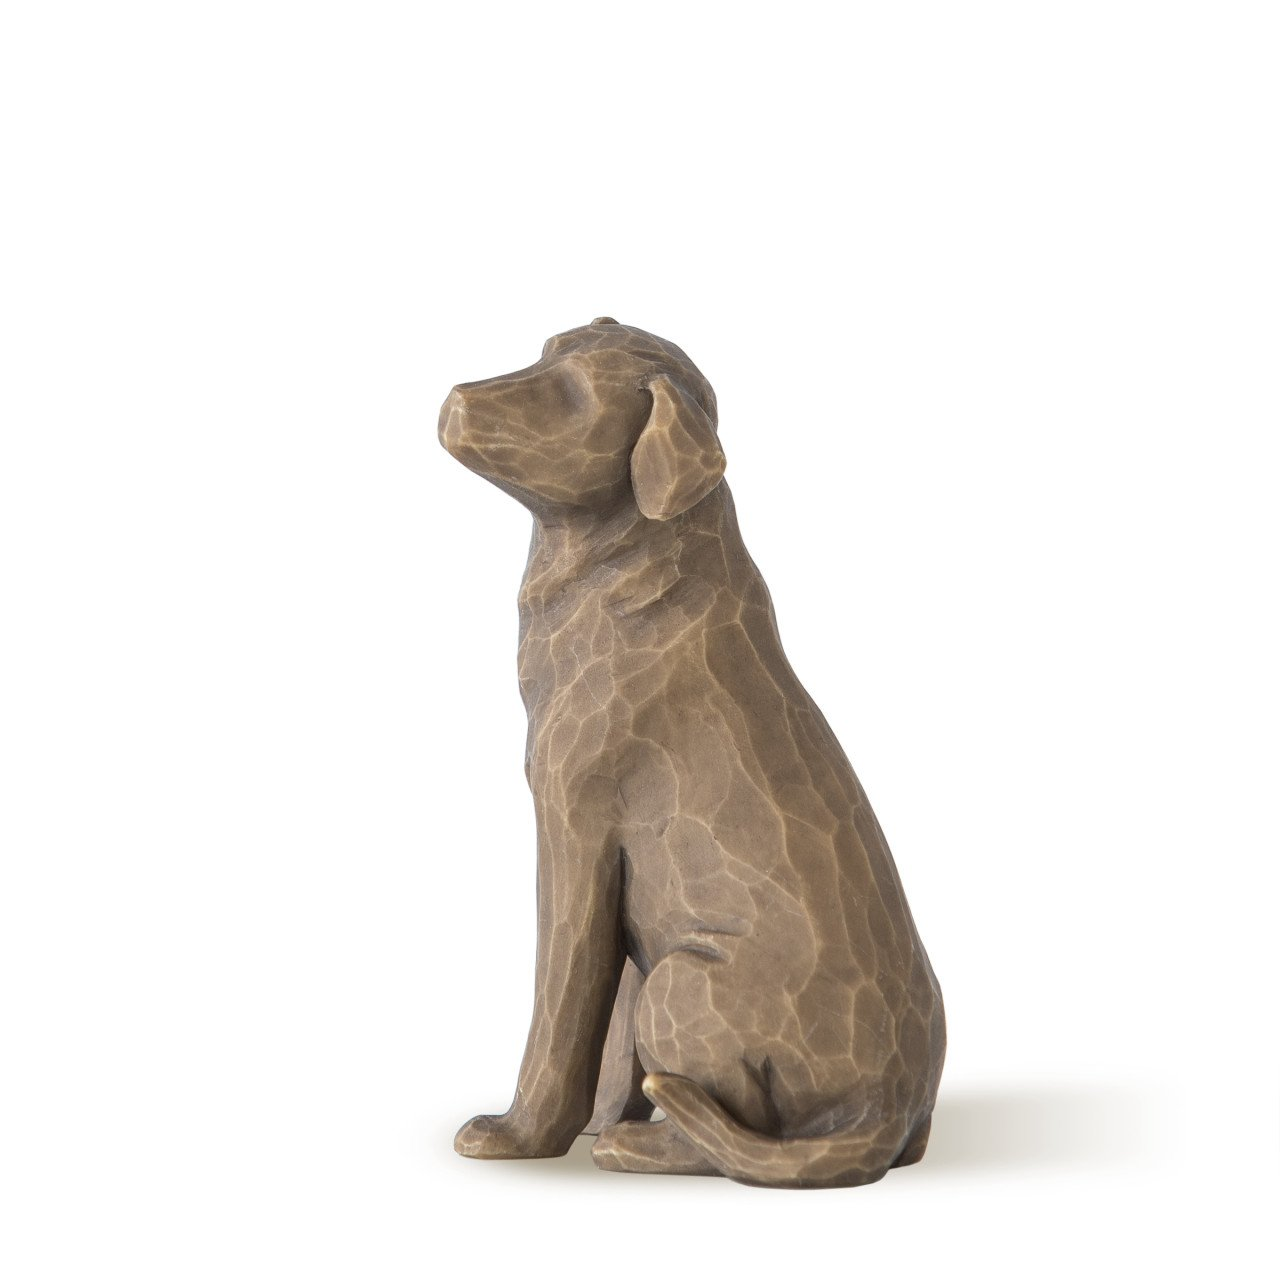 Willow Tree Love my Dog (dark), sculpted hand-painted figure by Willow Tree